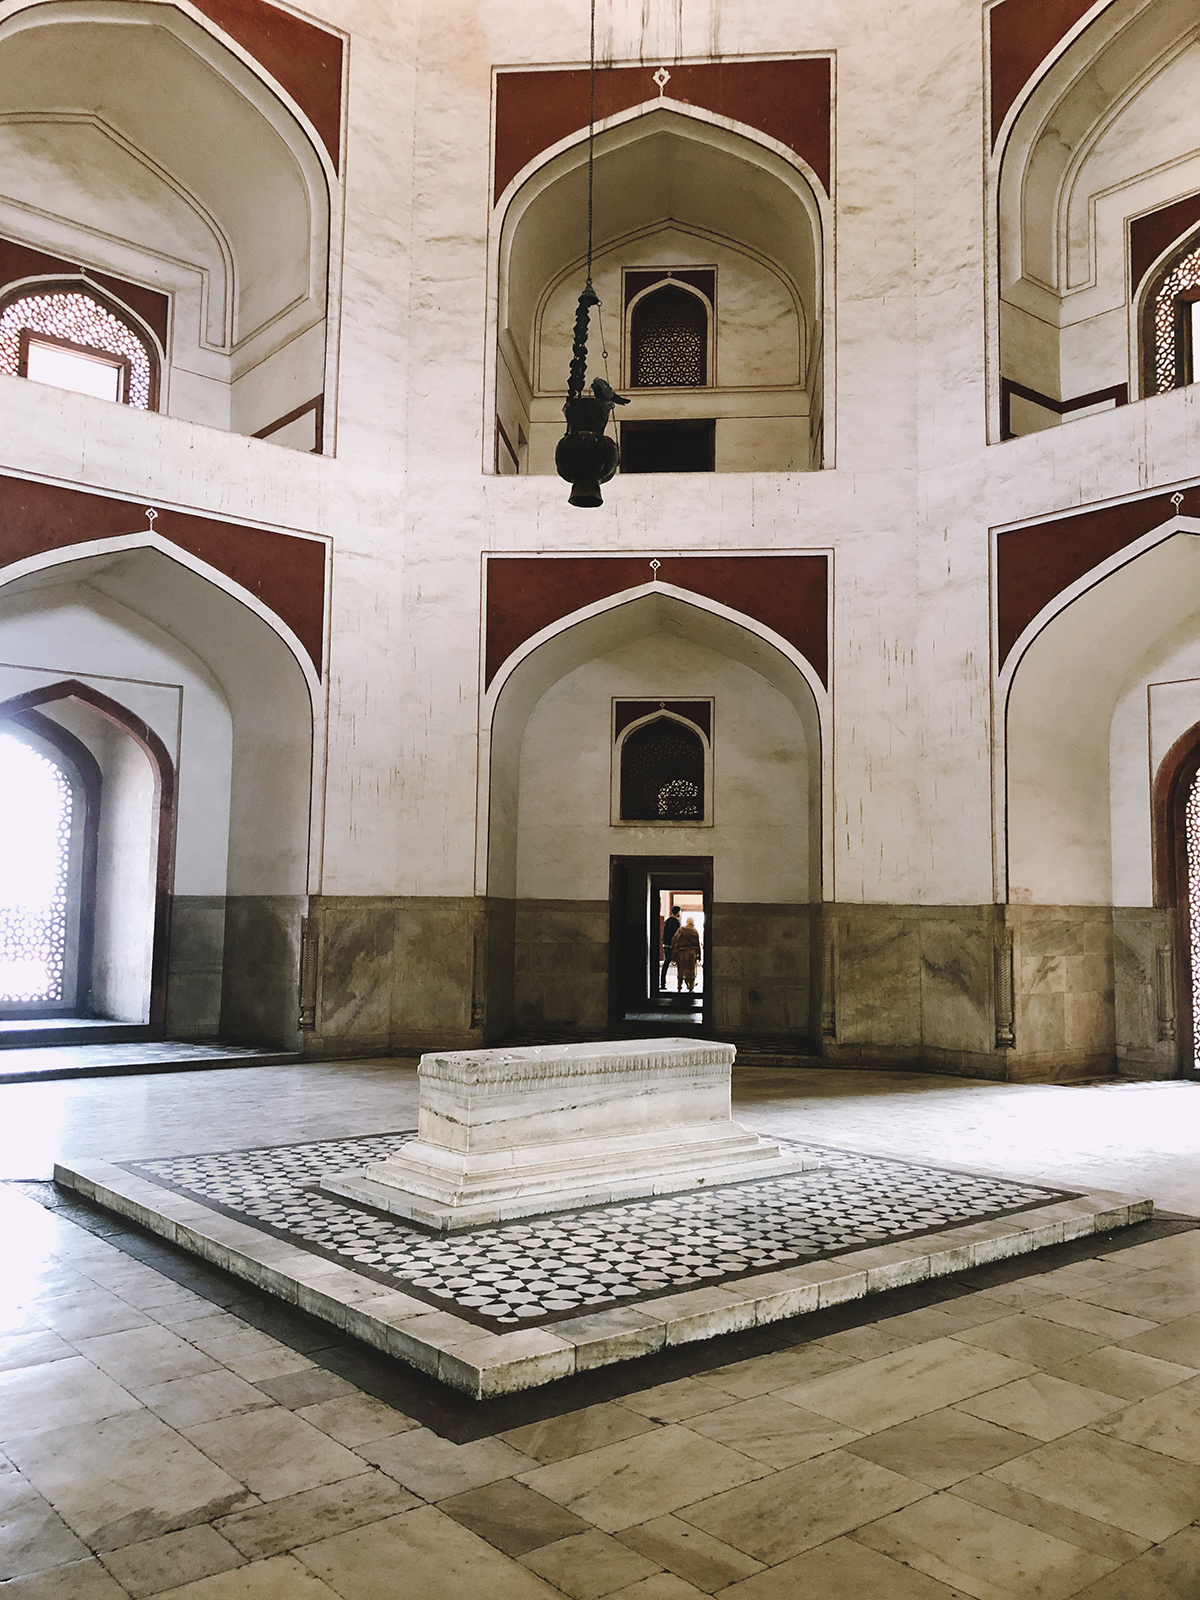 Marble interior of Humayun's tomb